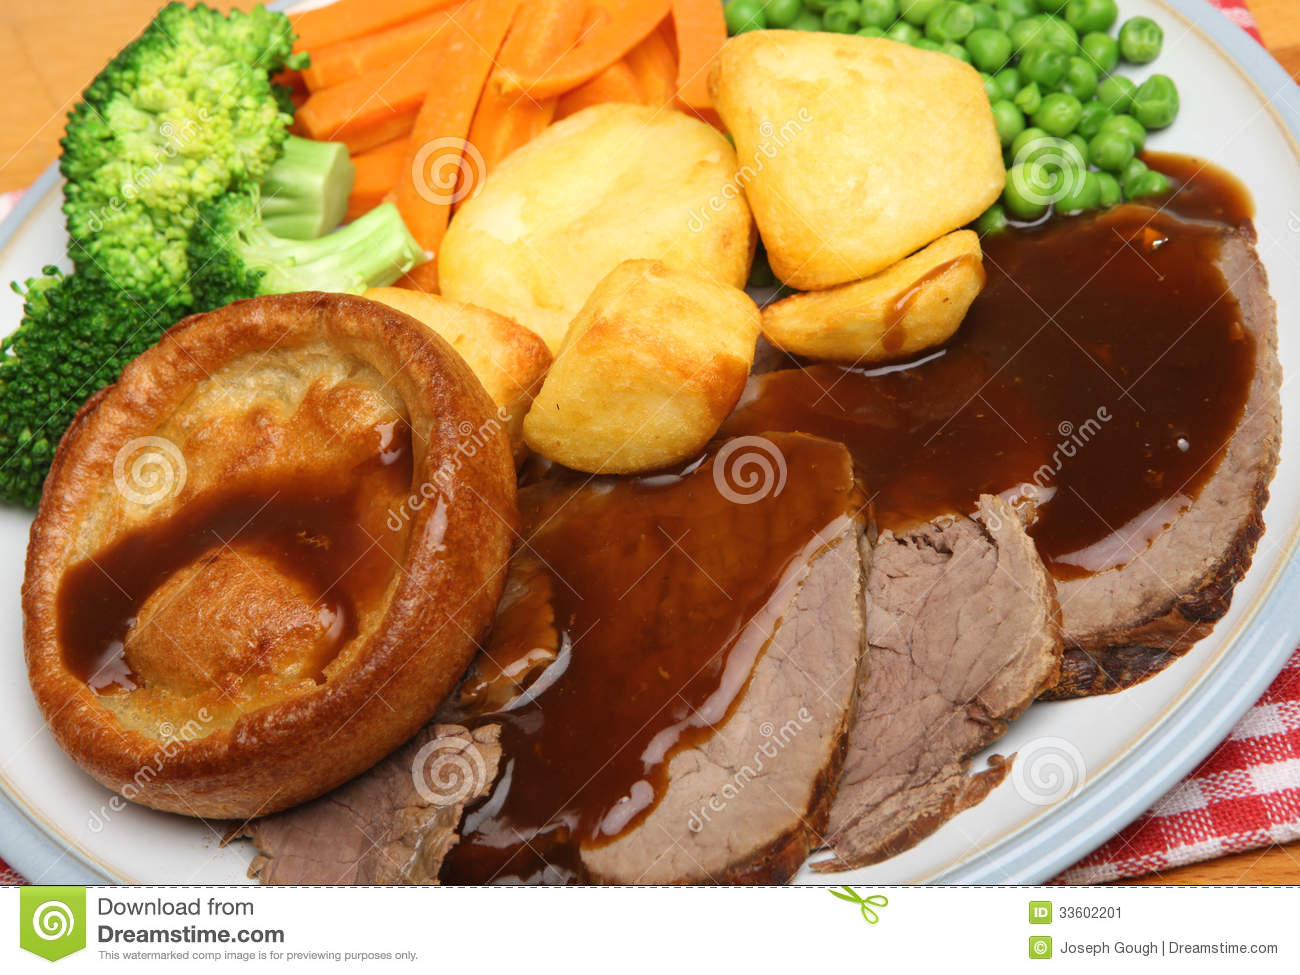 Roast beef Sunday dinner with Yorkshire pudding, vegetables and gravy.